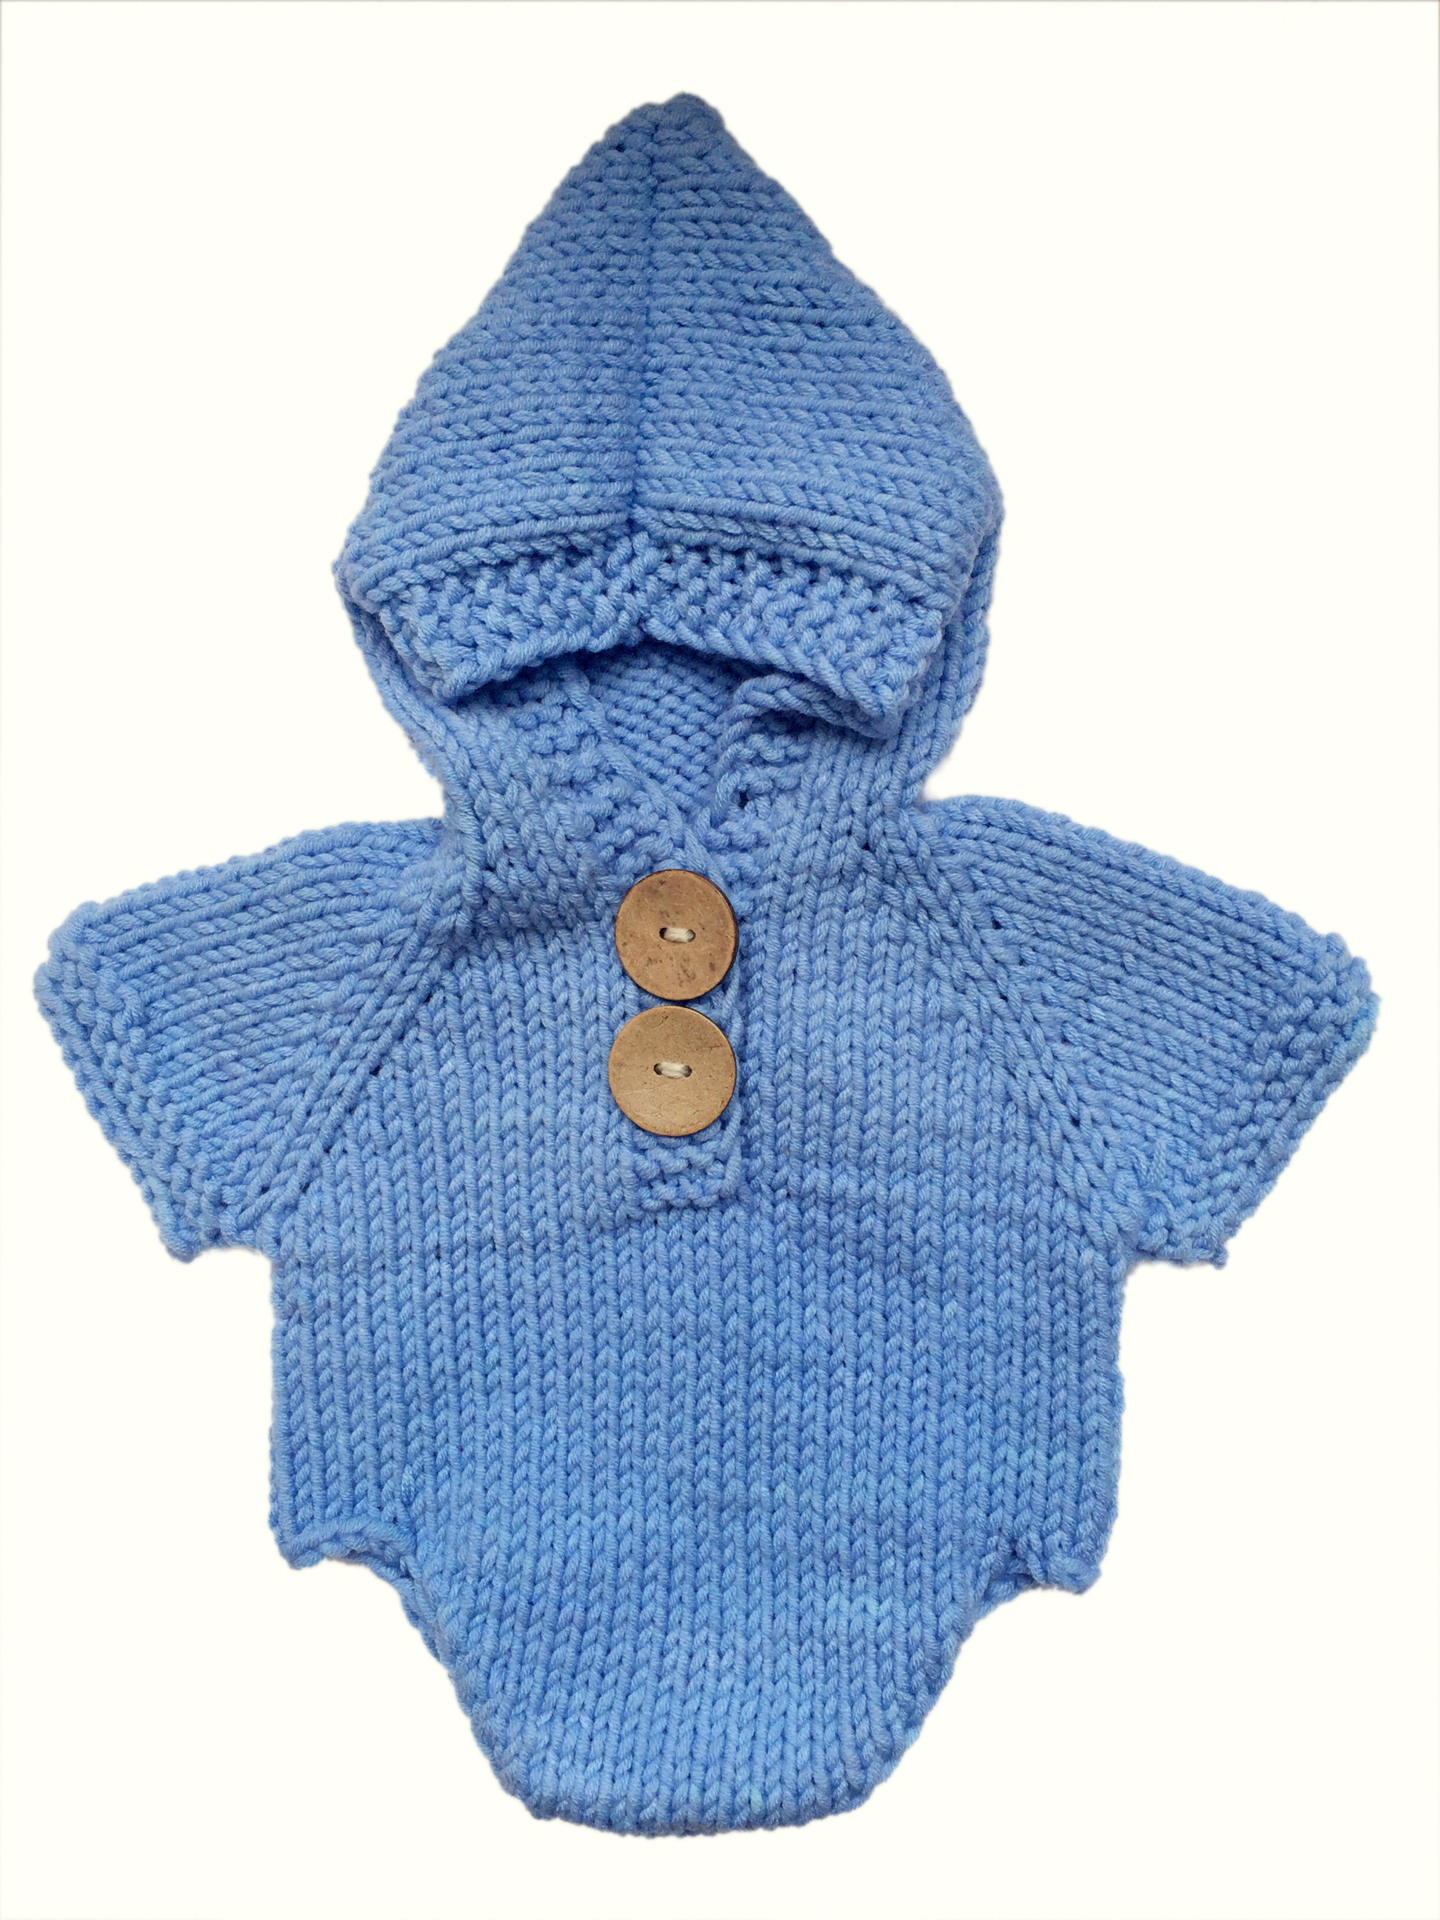 Newborn Baby Clothing Girls Rompers Girls Rompers Solid Handmade Wool Knitting Clothes Infant Toddler Baby Autumn Costume hsp174